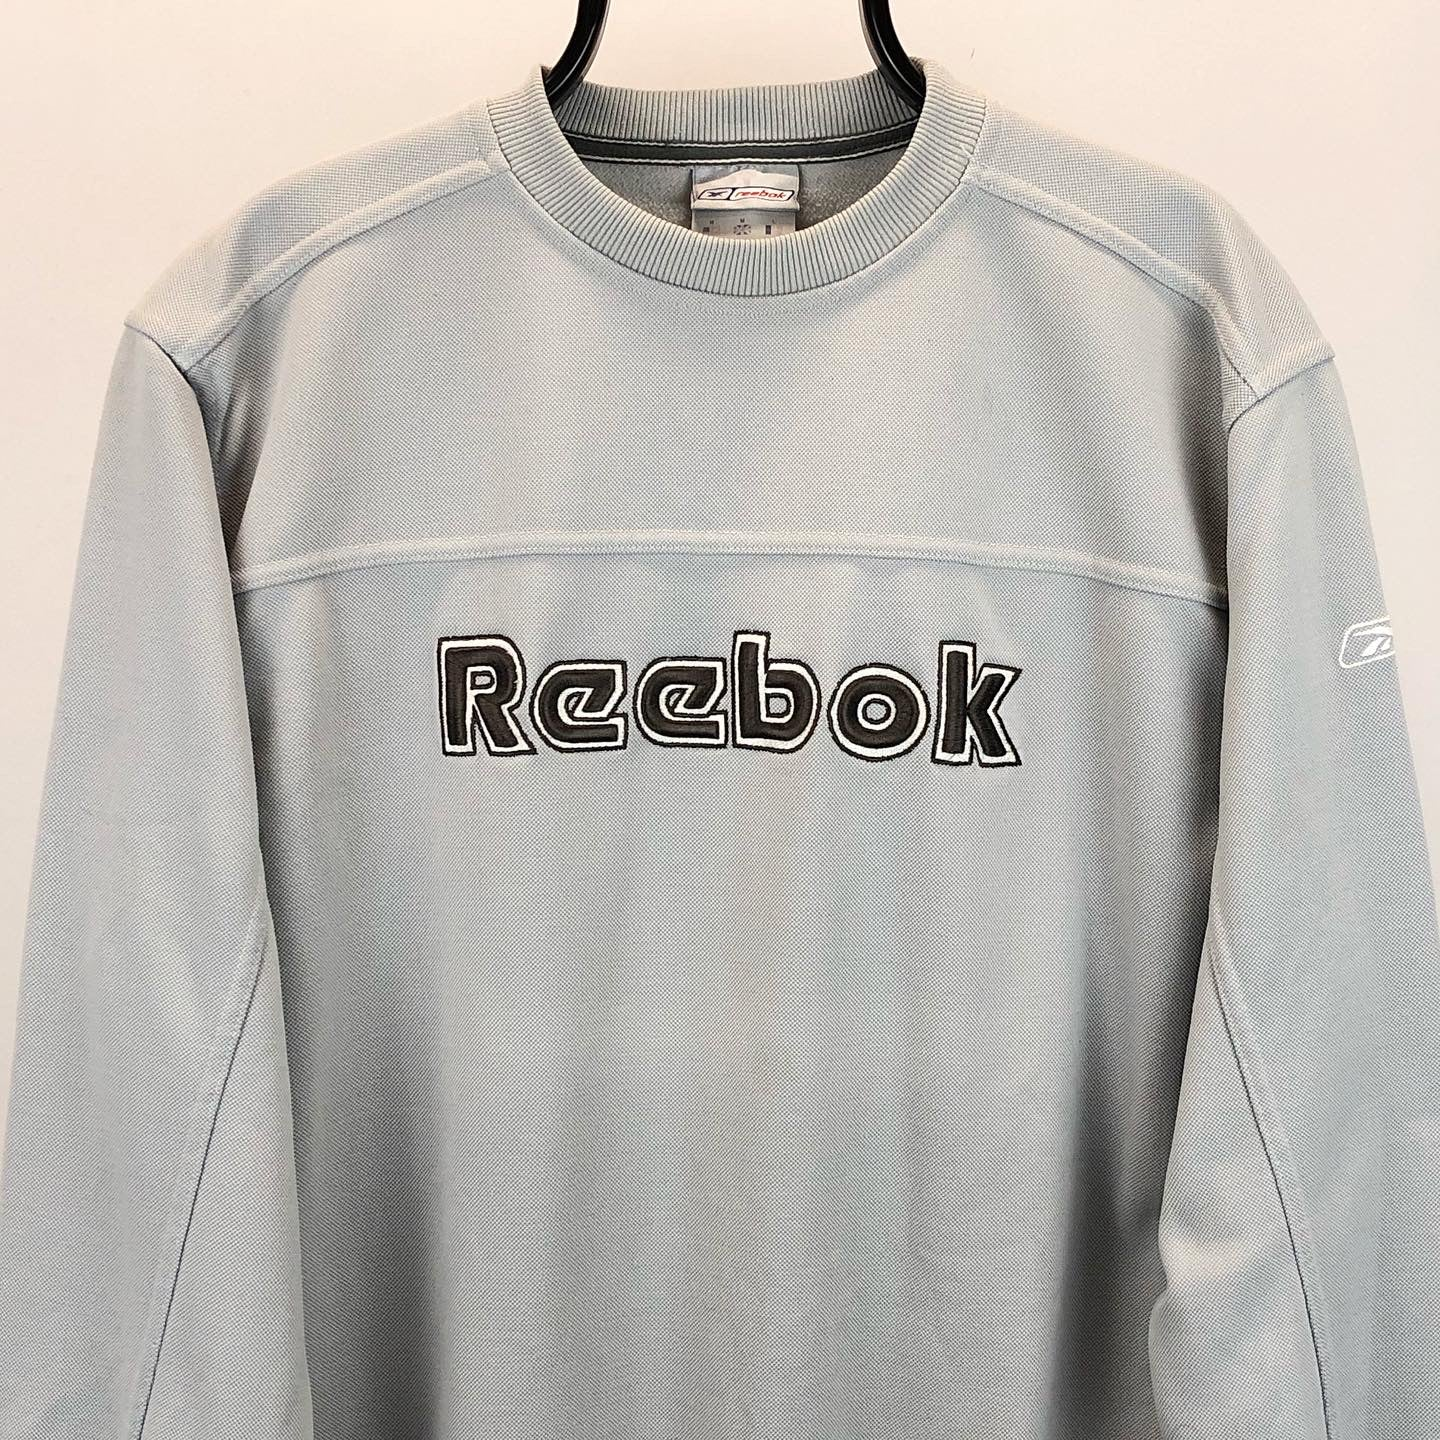 Vintage Reebok Spellout Sweatshirt in Silver/Grey - Men's Medium/Women's Large